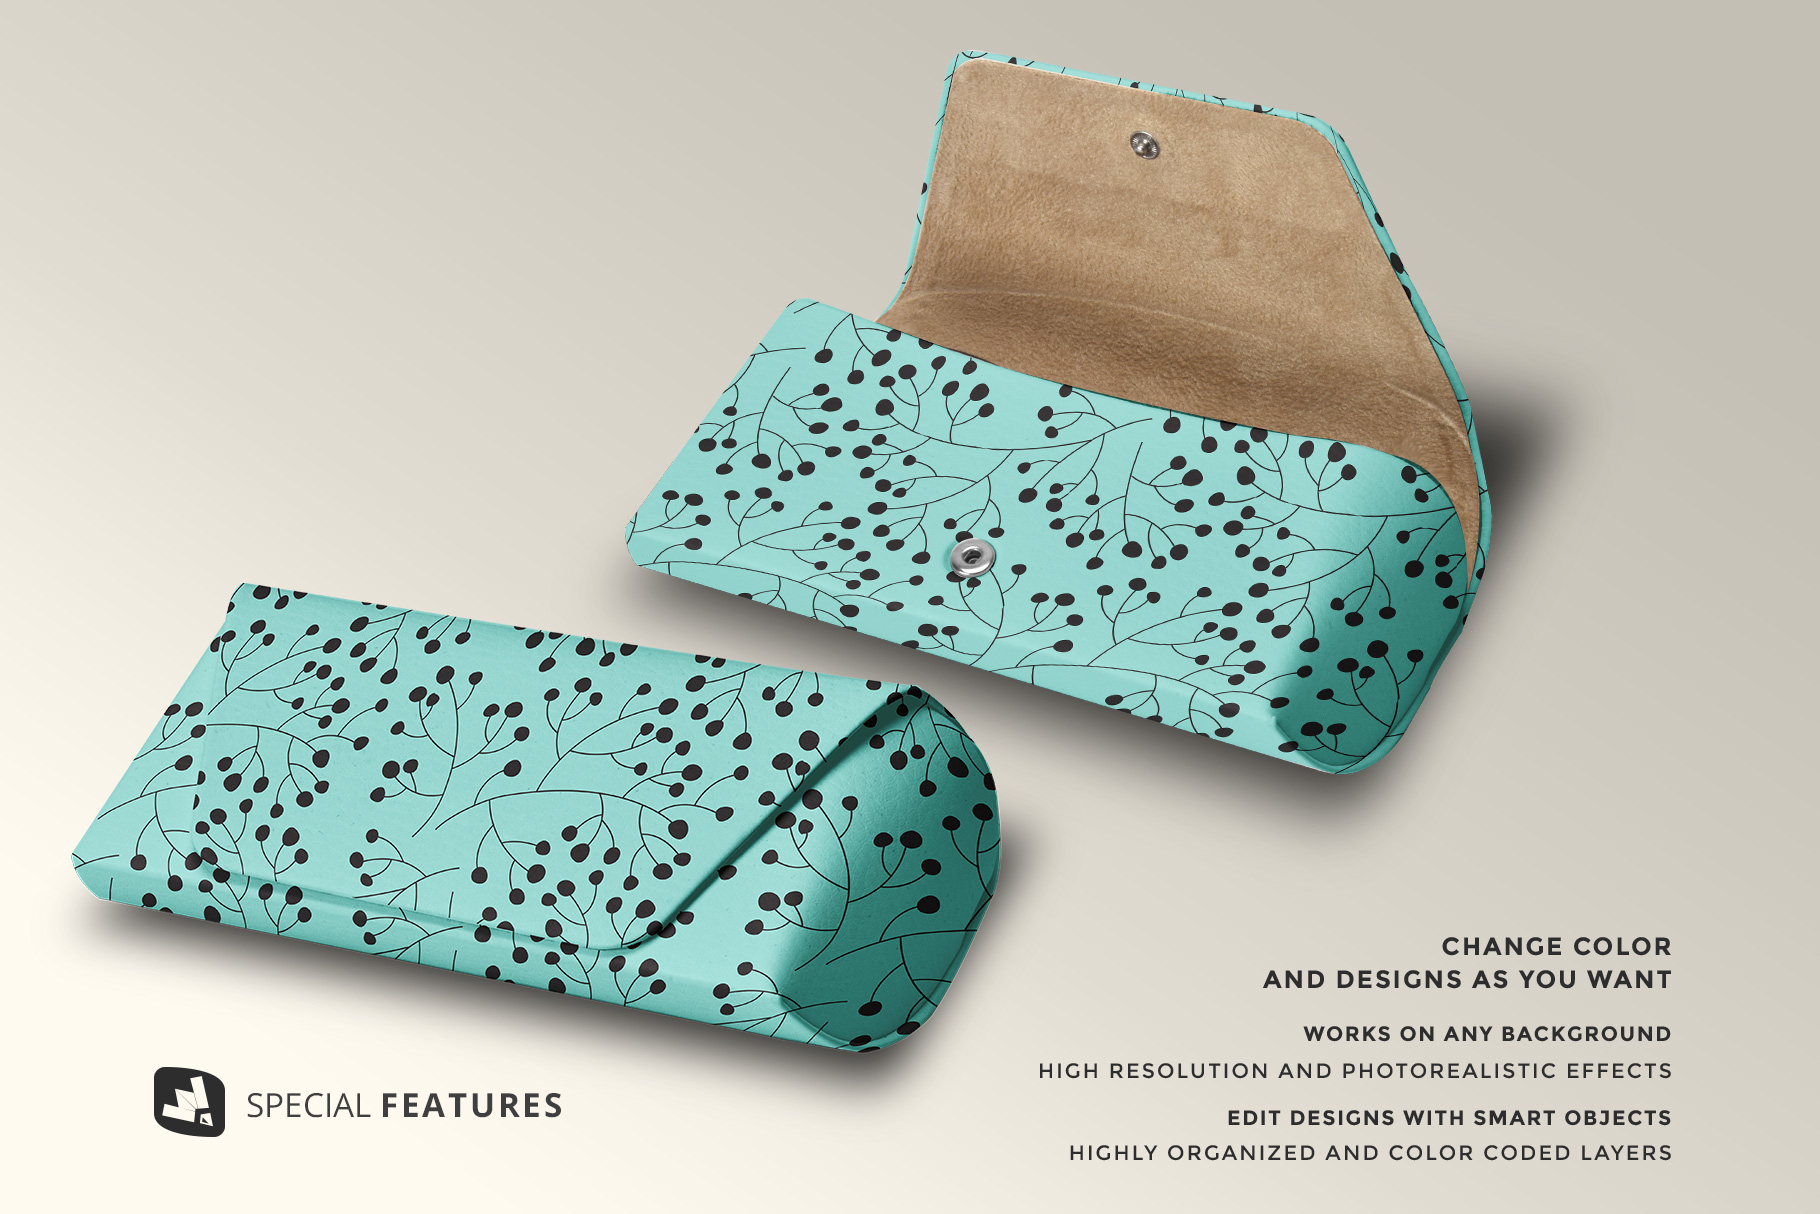 features of the leather eyewear box mockup